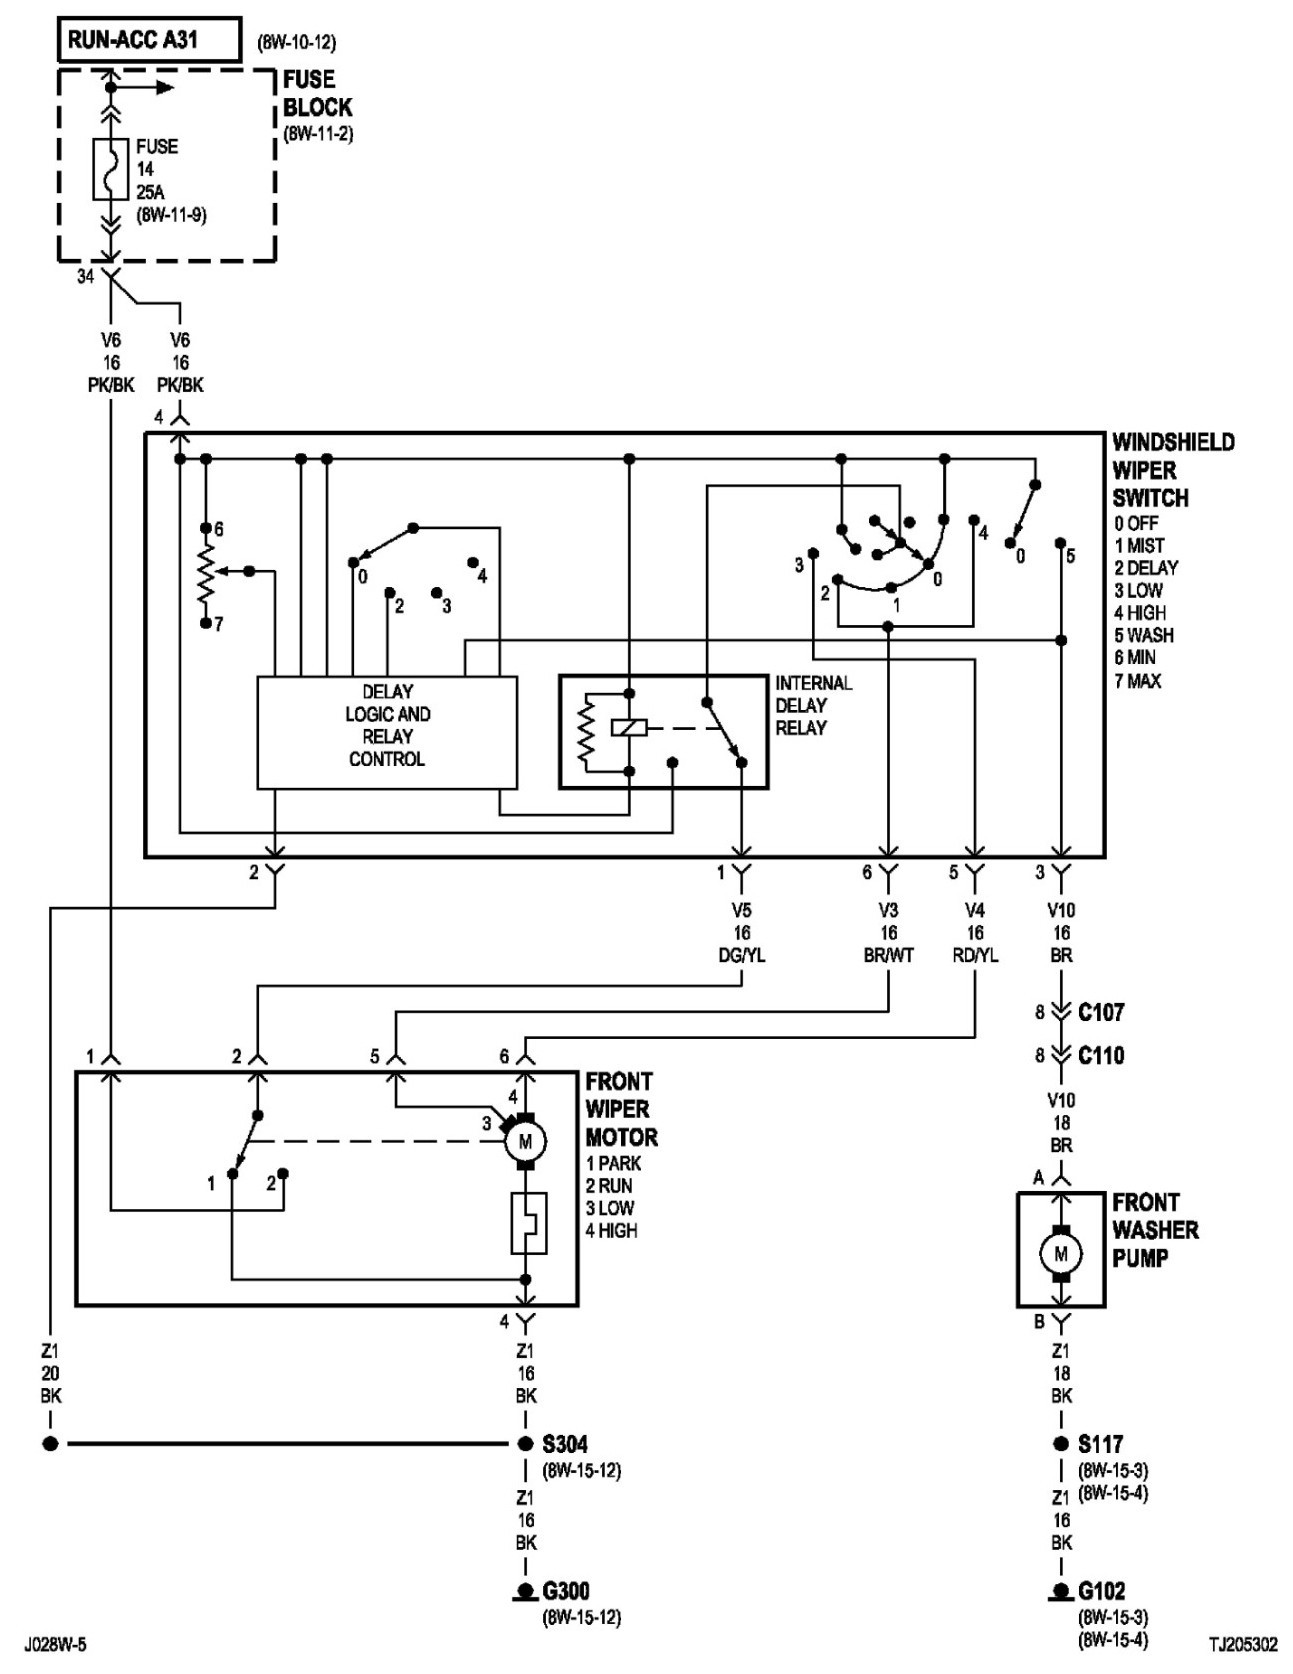 Jeep Tj Ignition Switch Wiring Wiring Diagram & Fuse Box \u2022 Jeep  Wrangler Schematics 2004 Jeep Wrangler Wiring Diagram